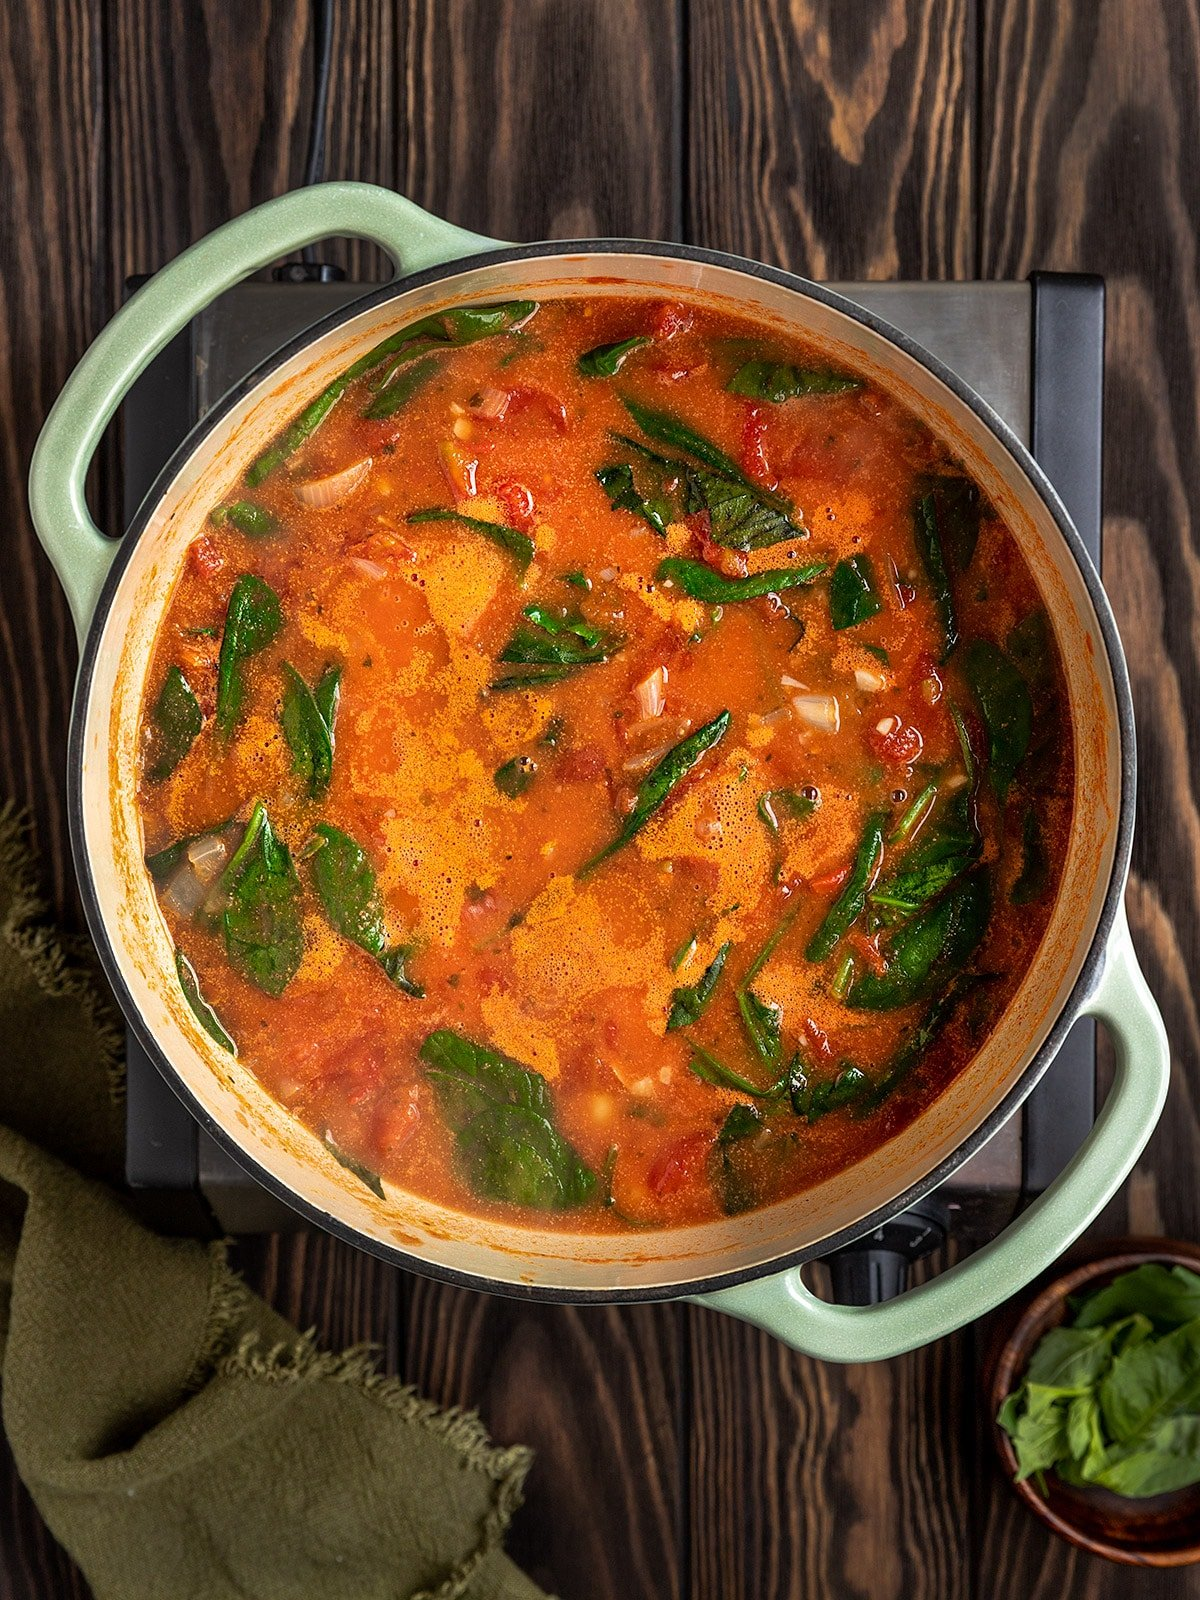 dutch oven filled with a tomato, spinach, basil, gnocchi soup